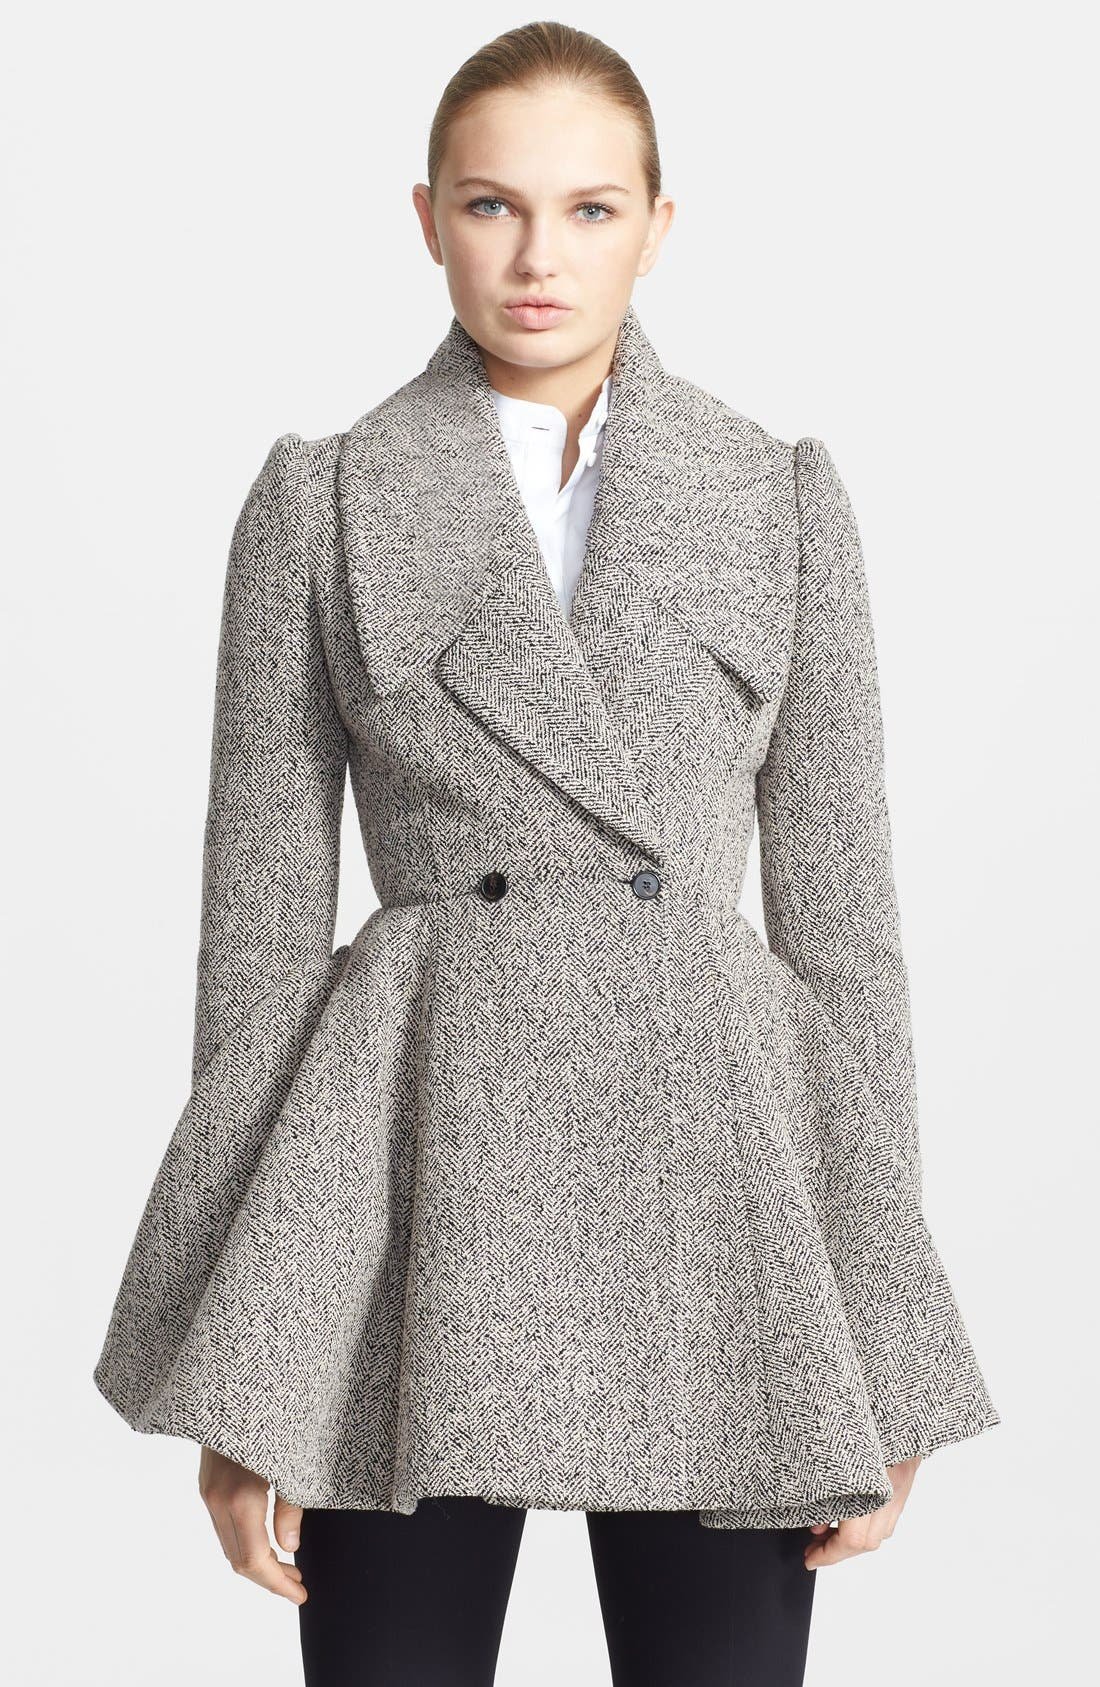 Alternate Image 1 Selected - Alexander McQueen Herringbone Bouclé Peplum Coat